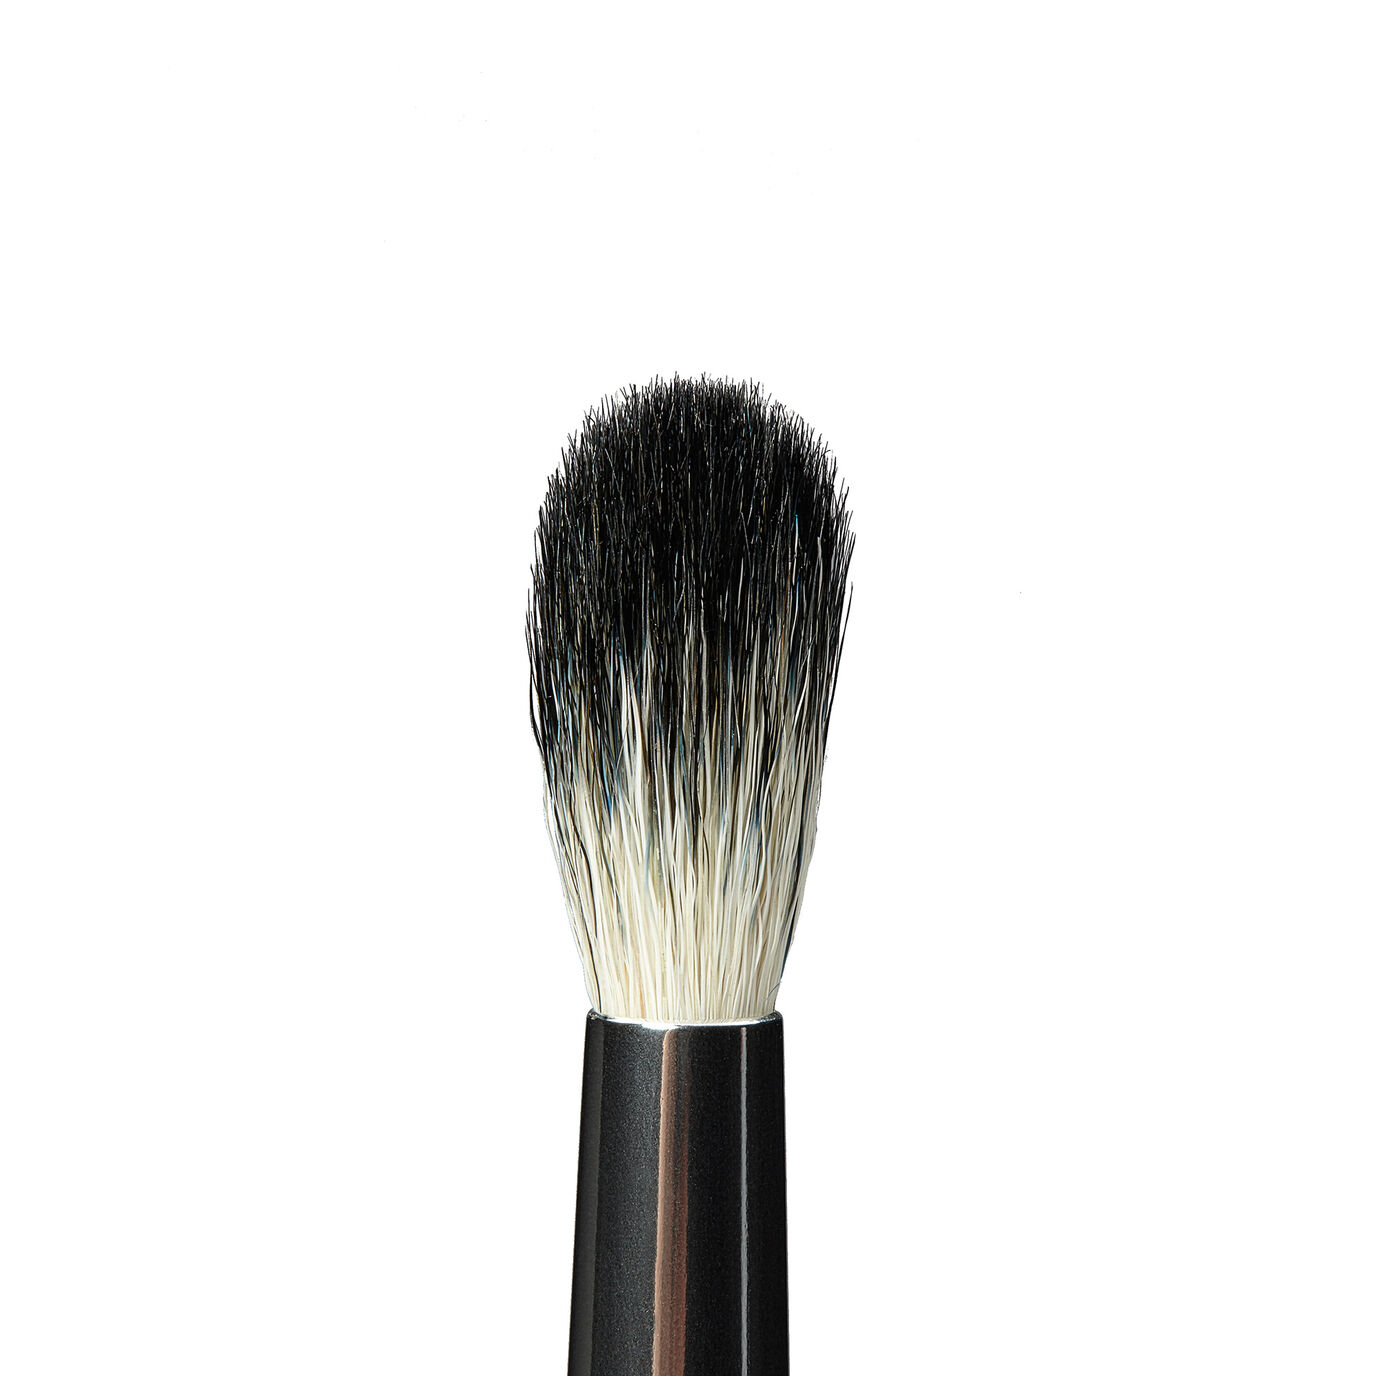 A25 Pro Brush - Tapered Blending Brush